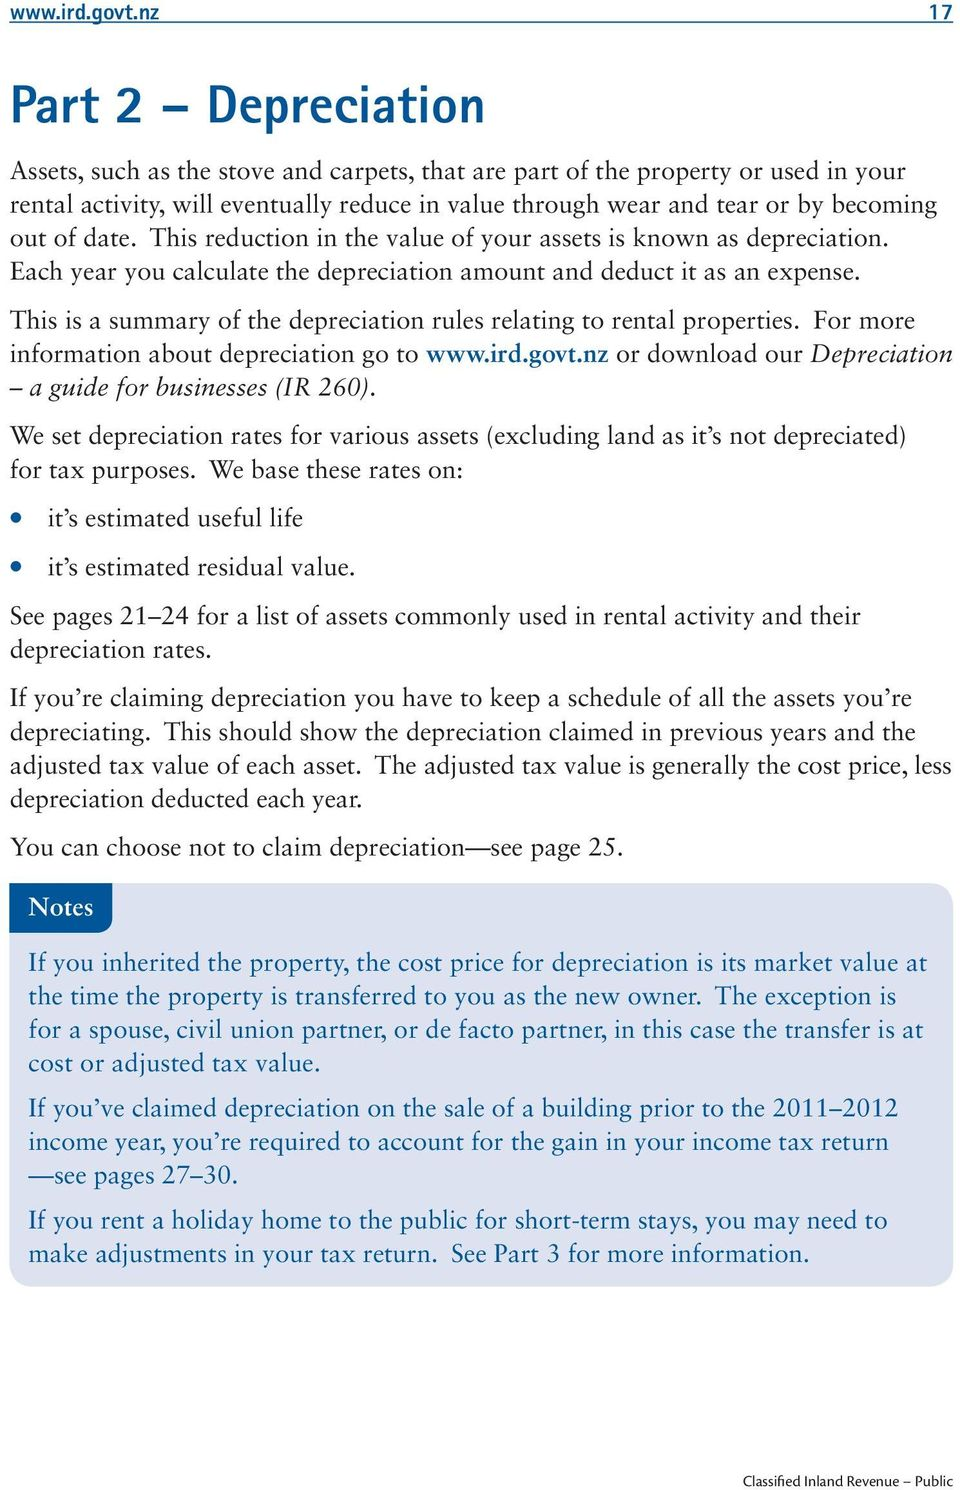 out of date. This reduction in the value of your assets is known as depreciation. Each year you calculate the depreciation amount and deduct it as an expense.